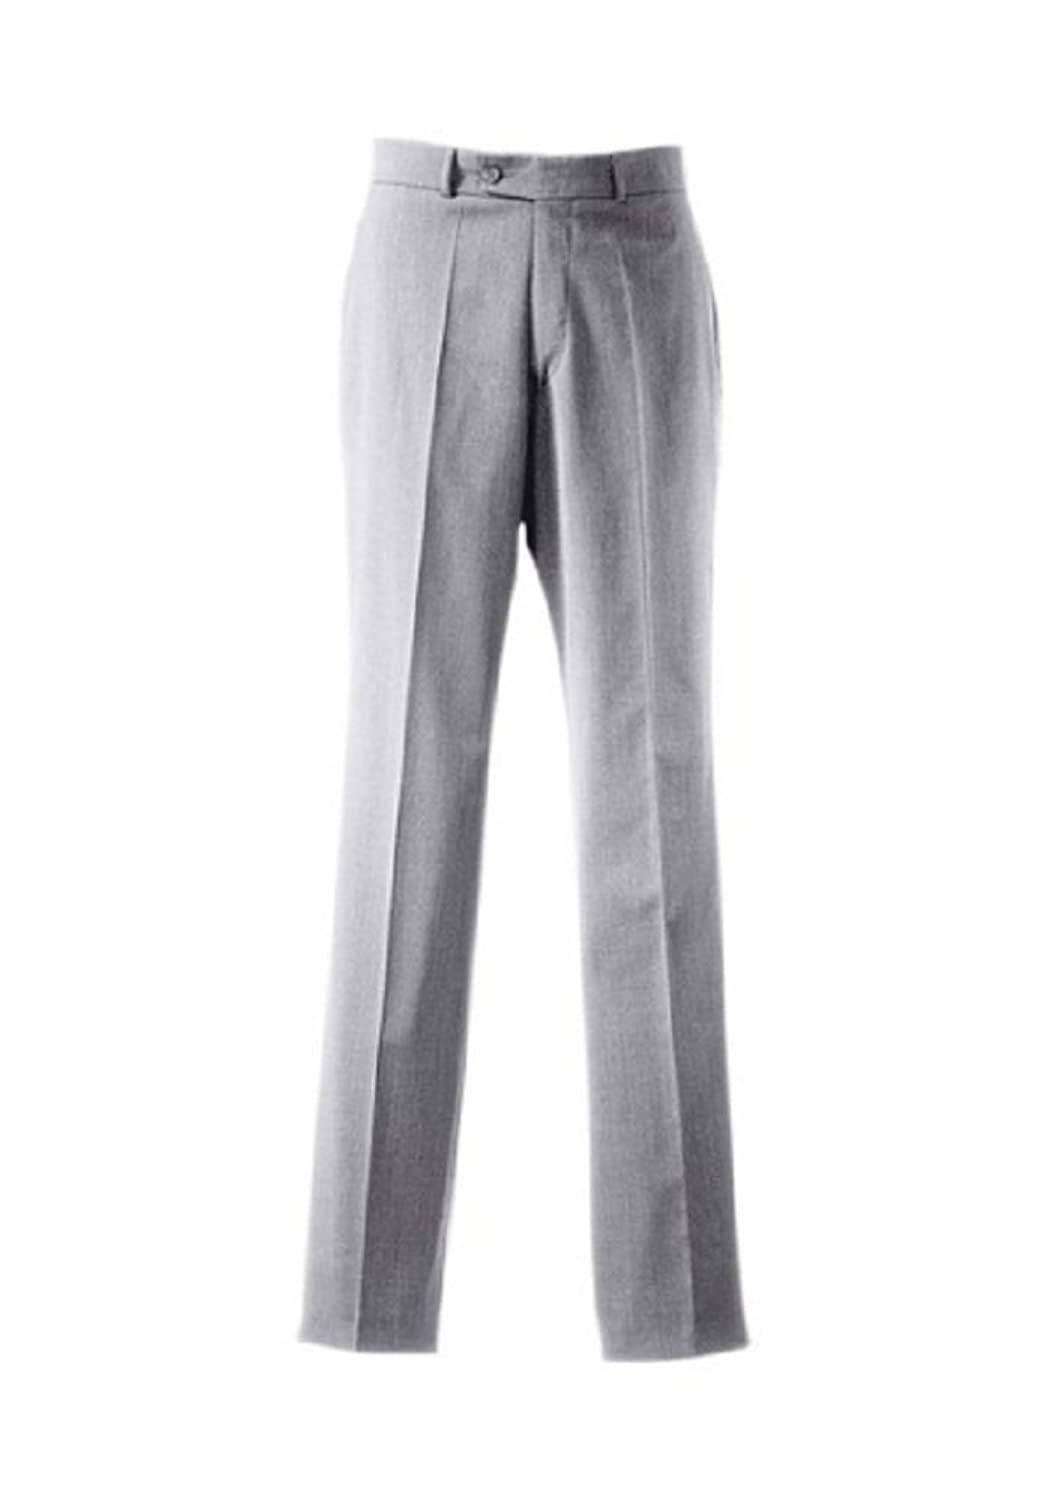 Trousers Flat front pants from Heine